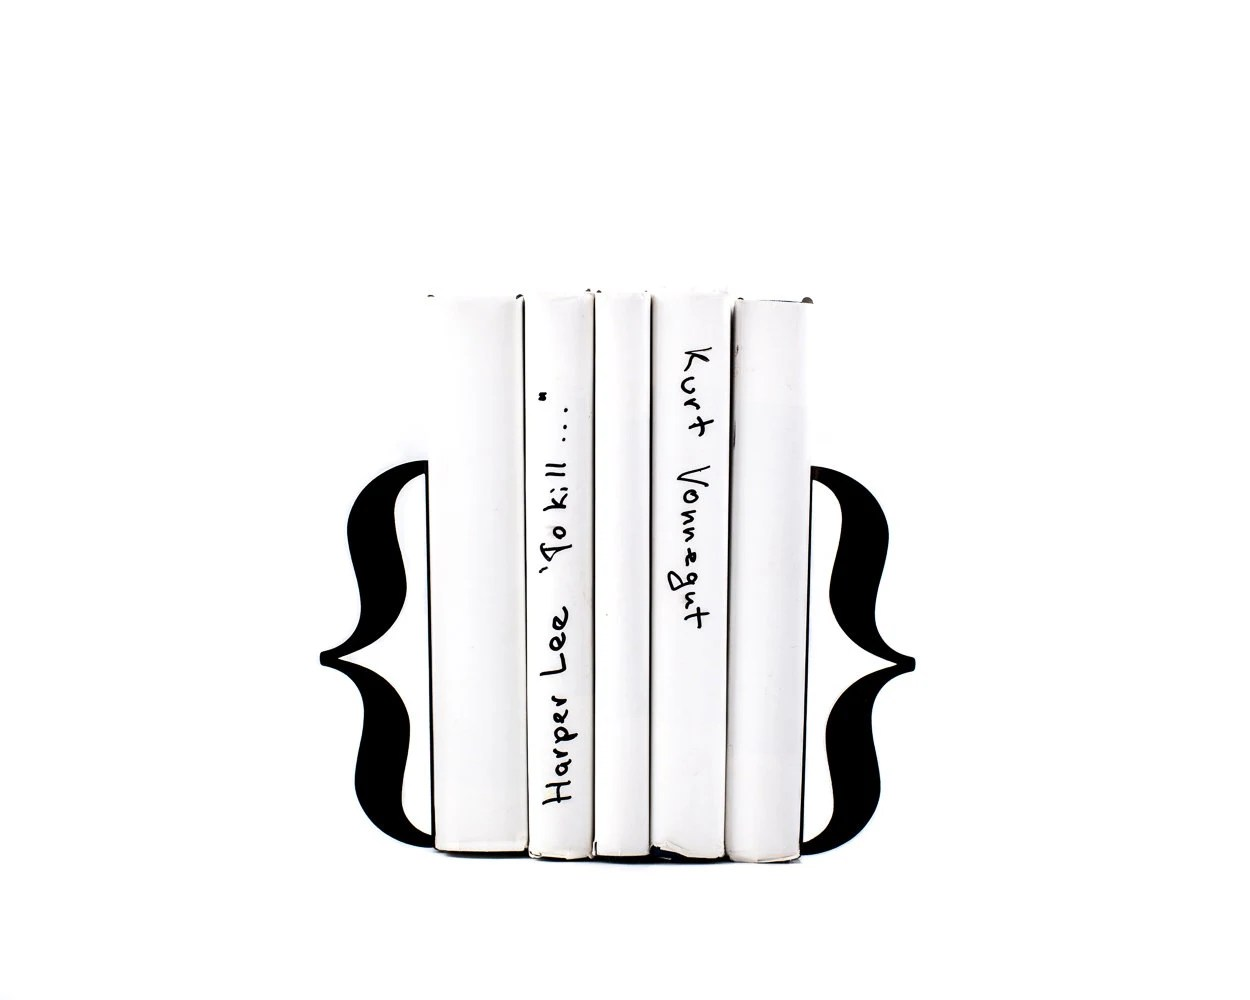 View Bookends by DesignAtelierArticle on Etsy